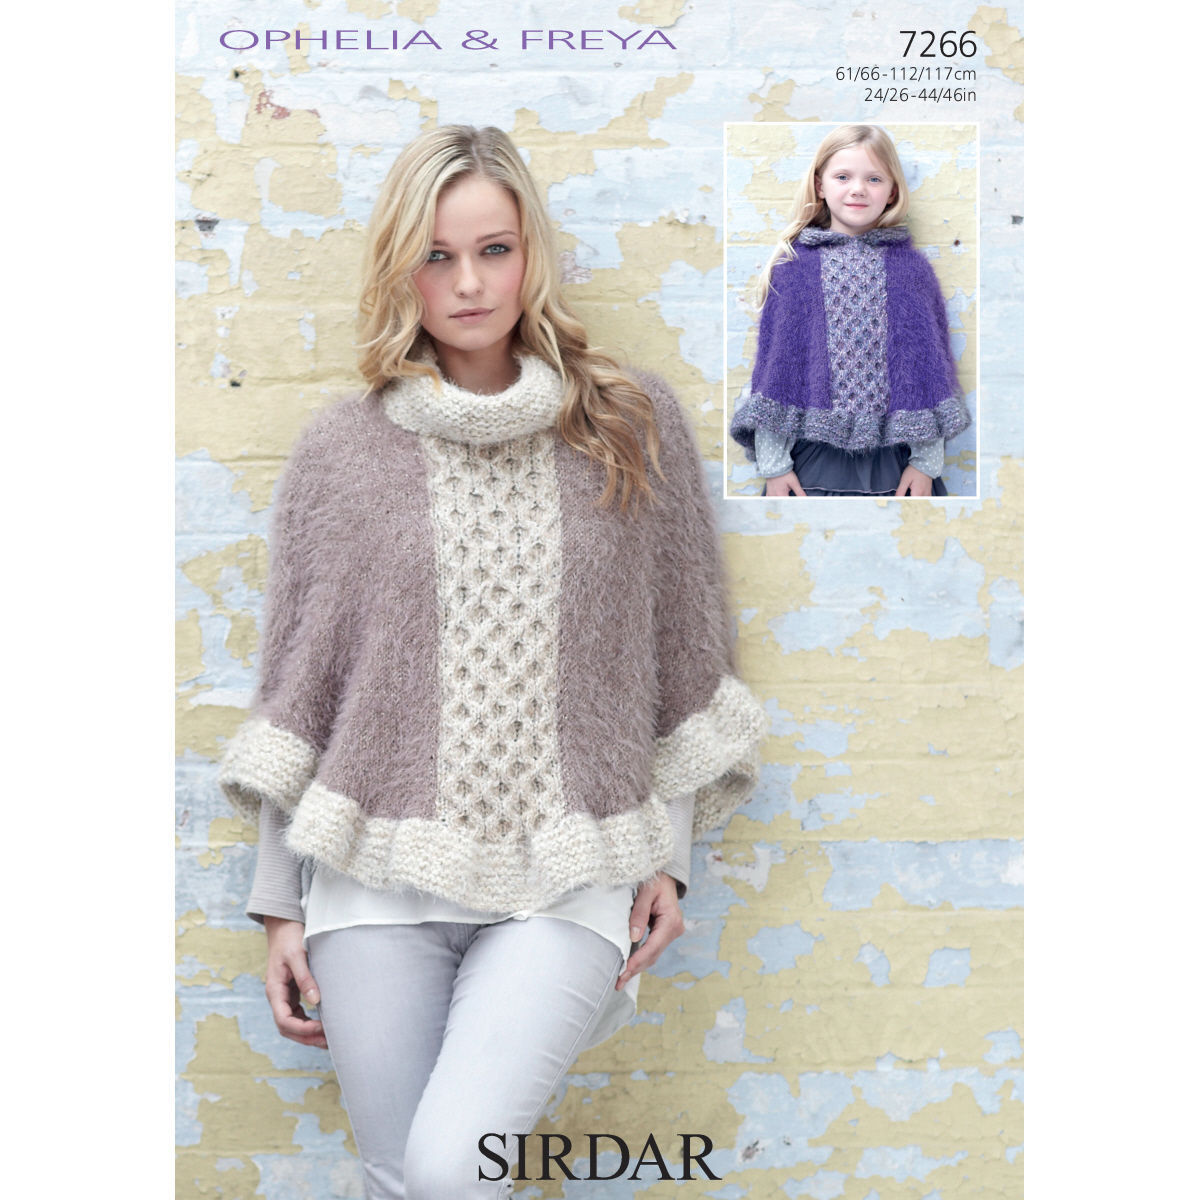 7266 - SIRDAR OPHELIA & FREYA CHUNKY CAPE KNITTING PATTERN - TO FIT ...